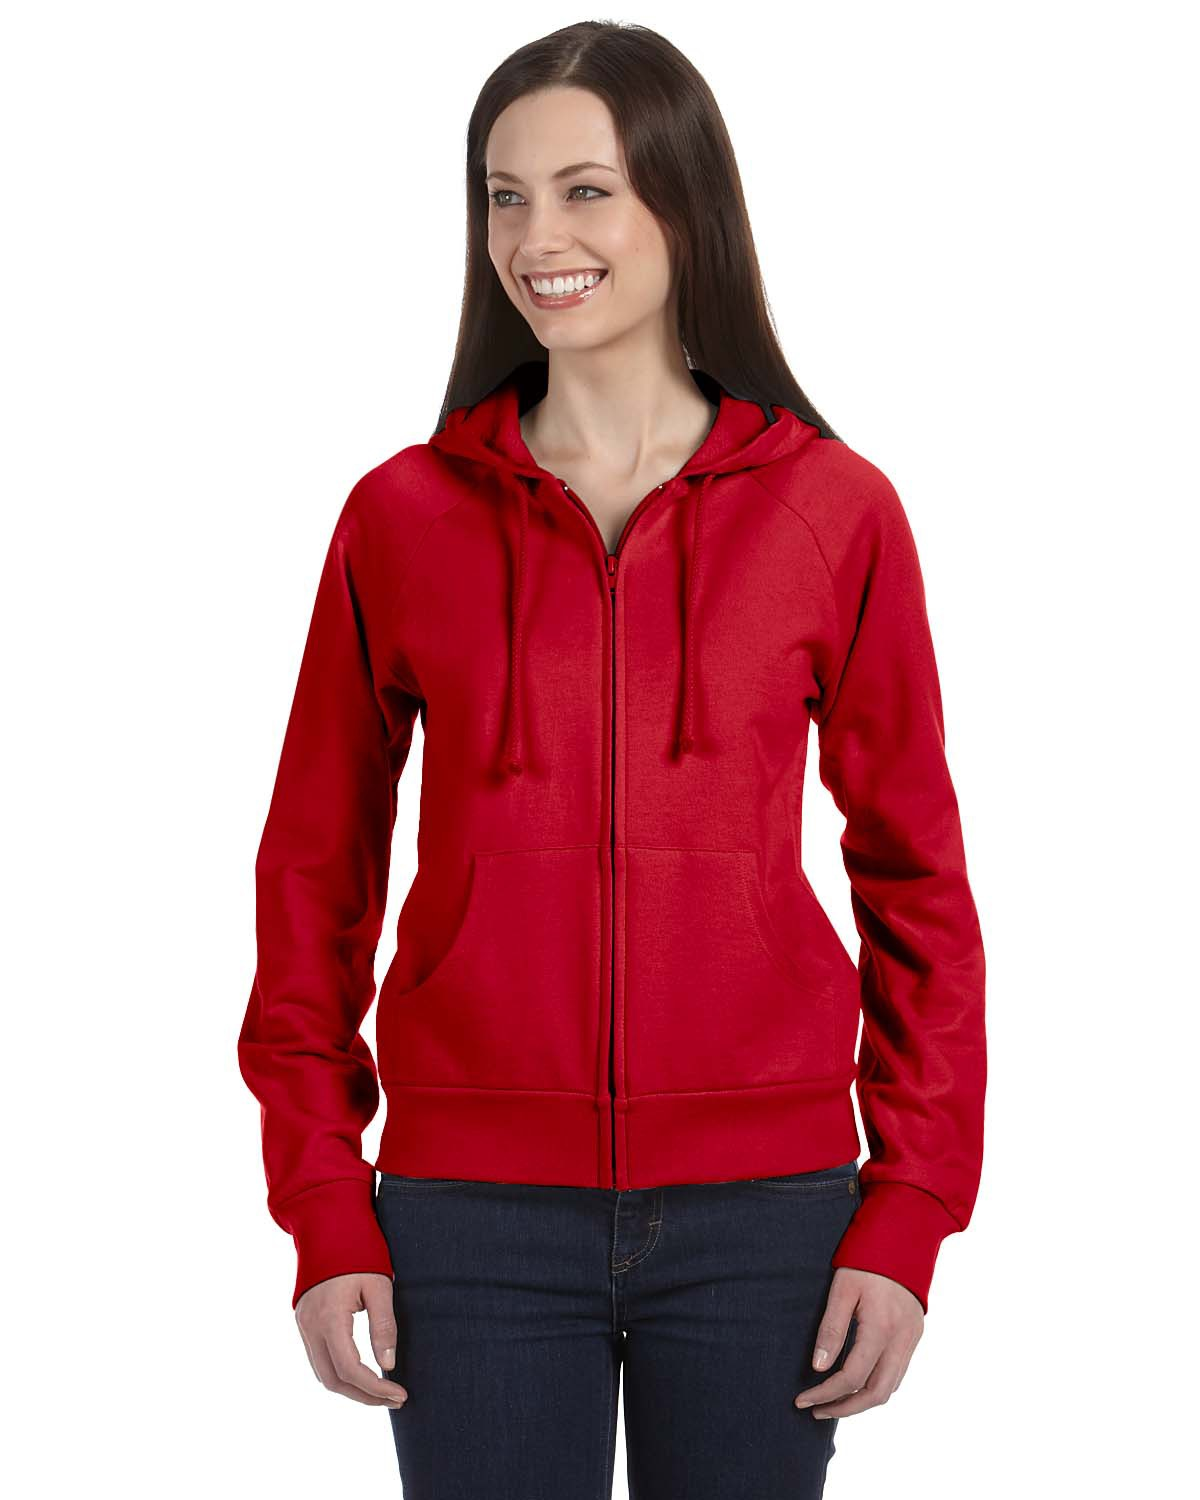 Bella B7007  Women's Full-Zip Hooded Sweatshirt